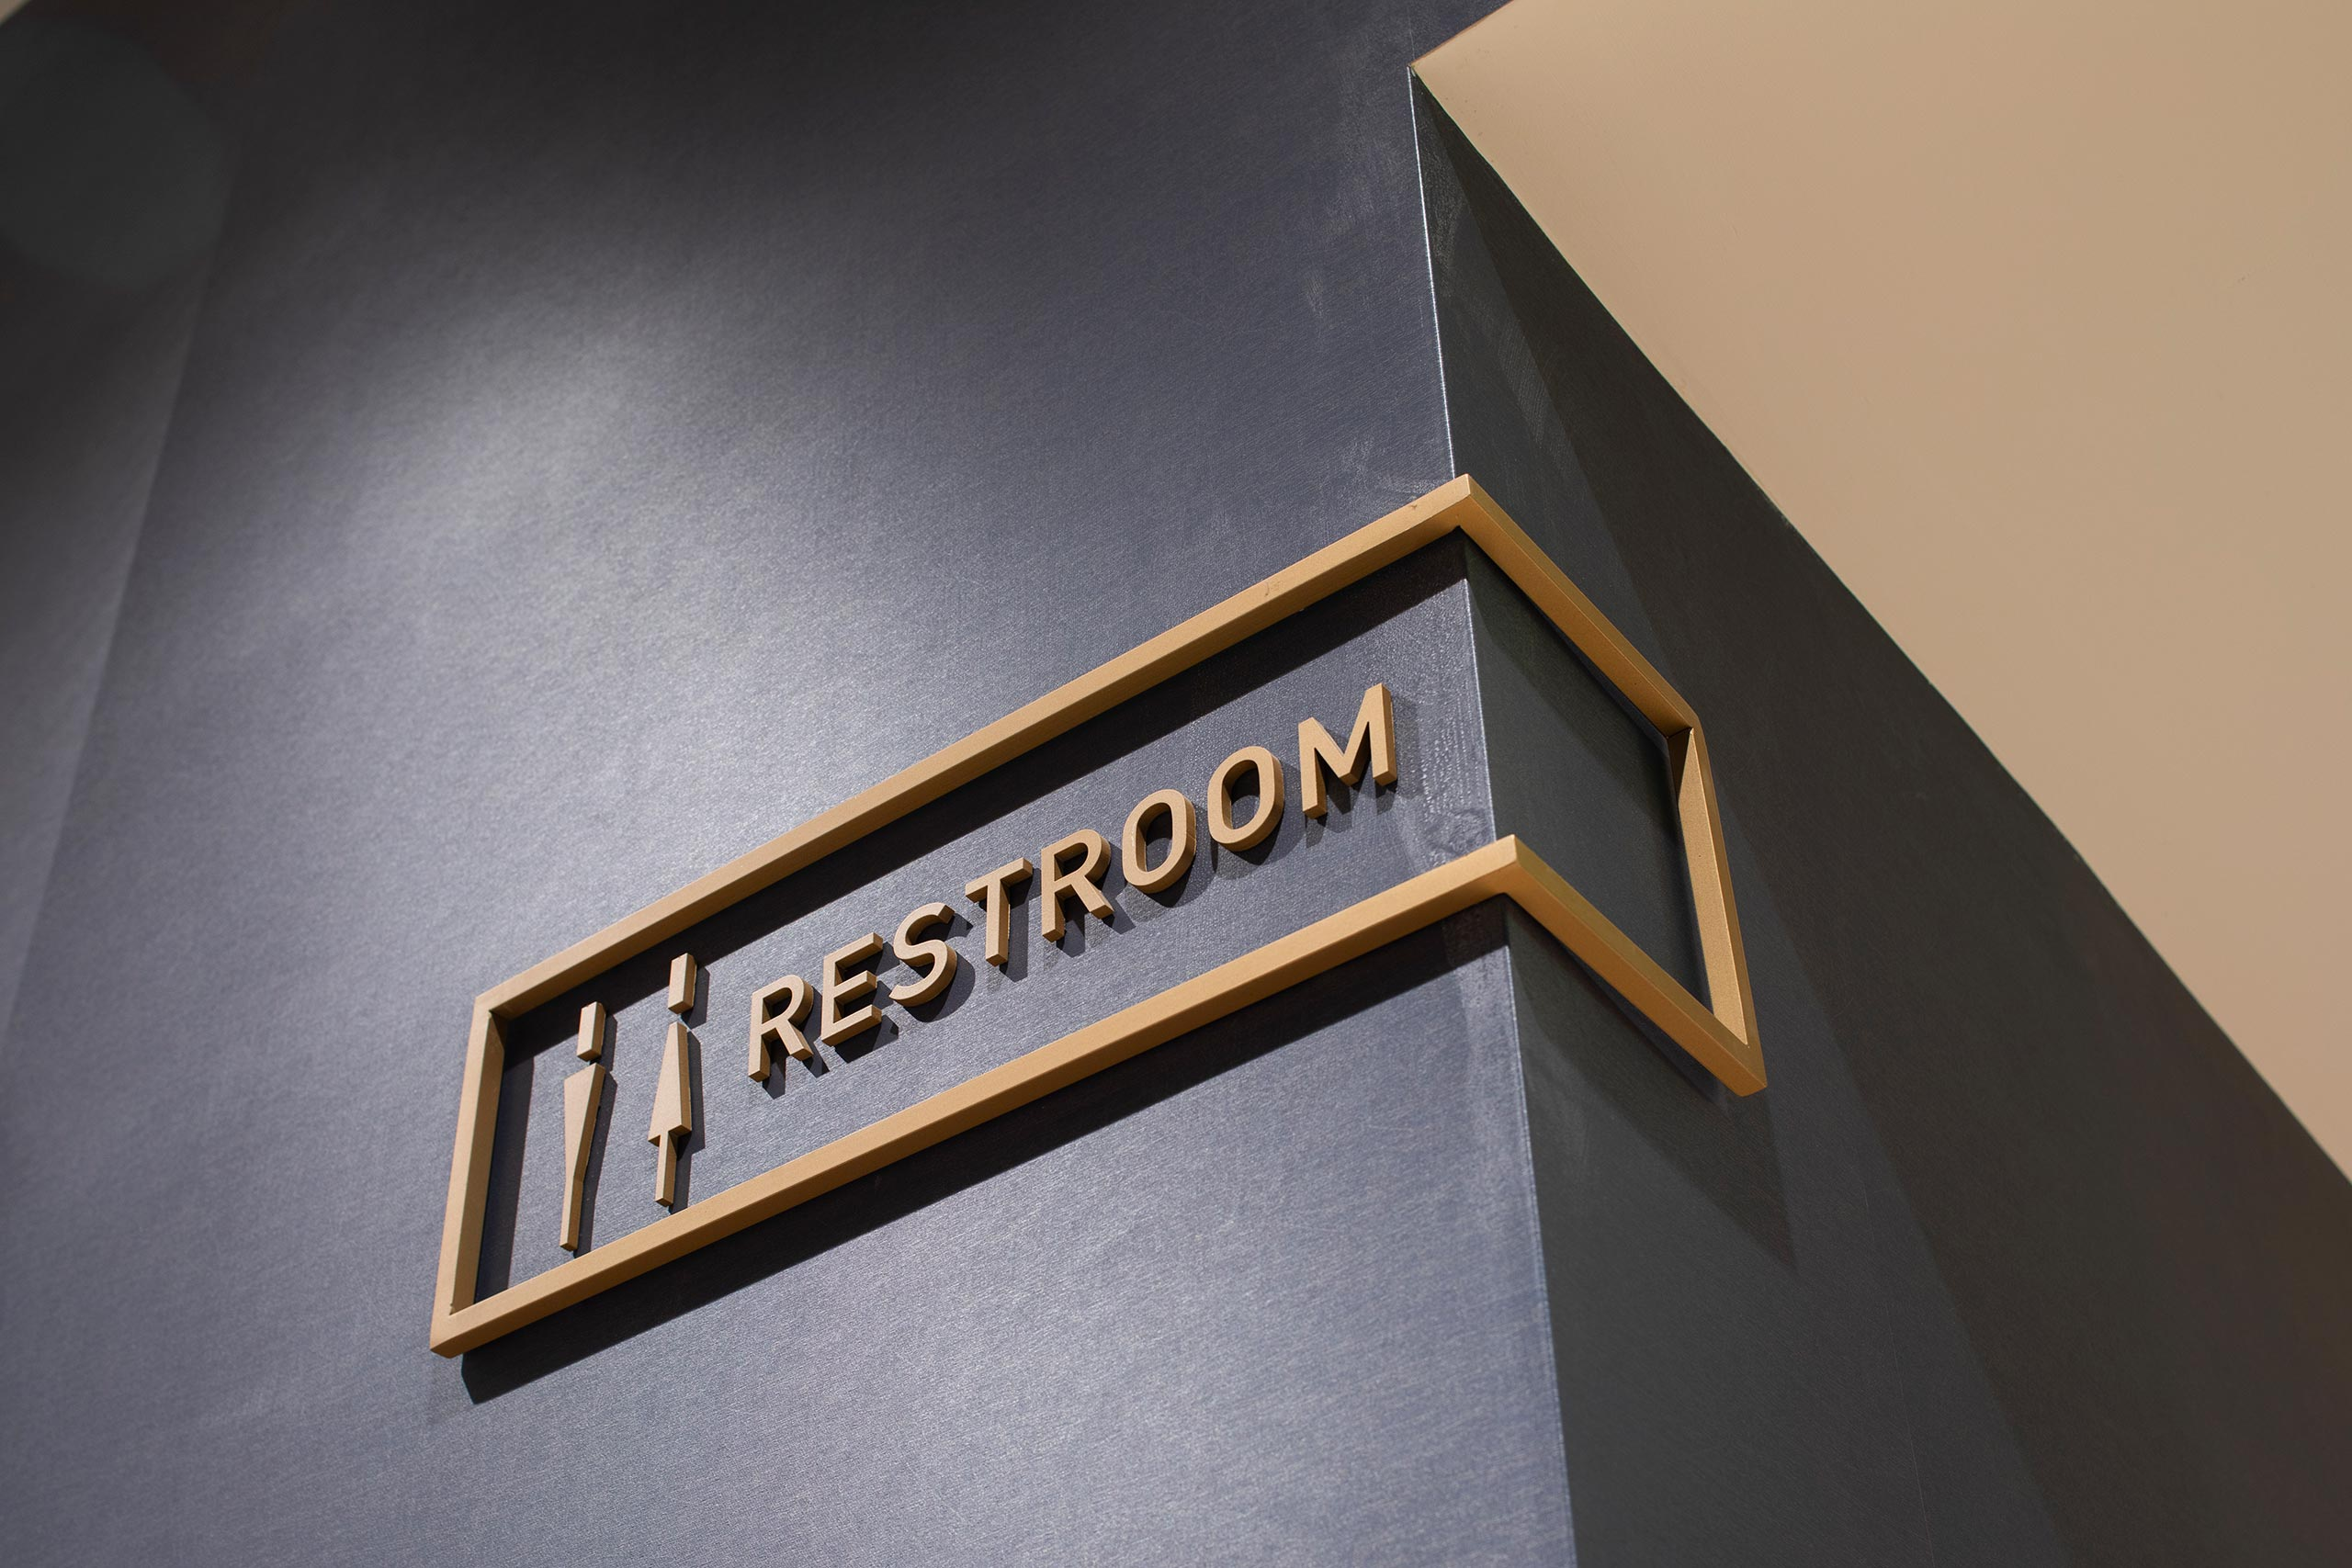 metal restroom sign wrapped around corner on dark grey wall